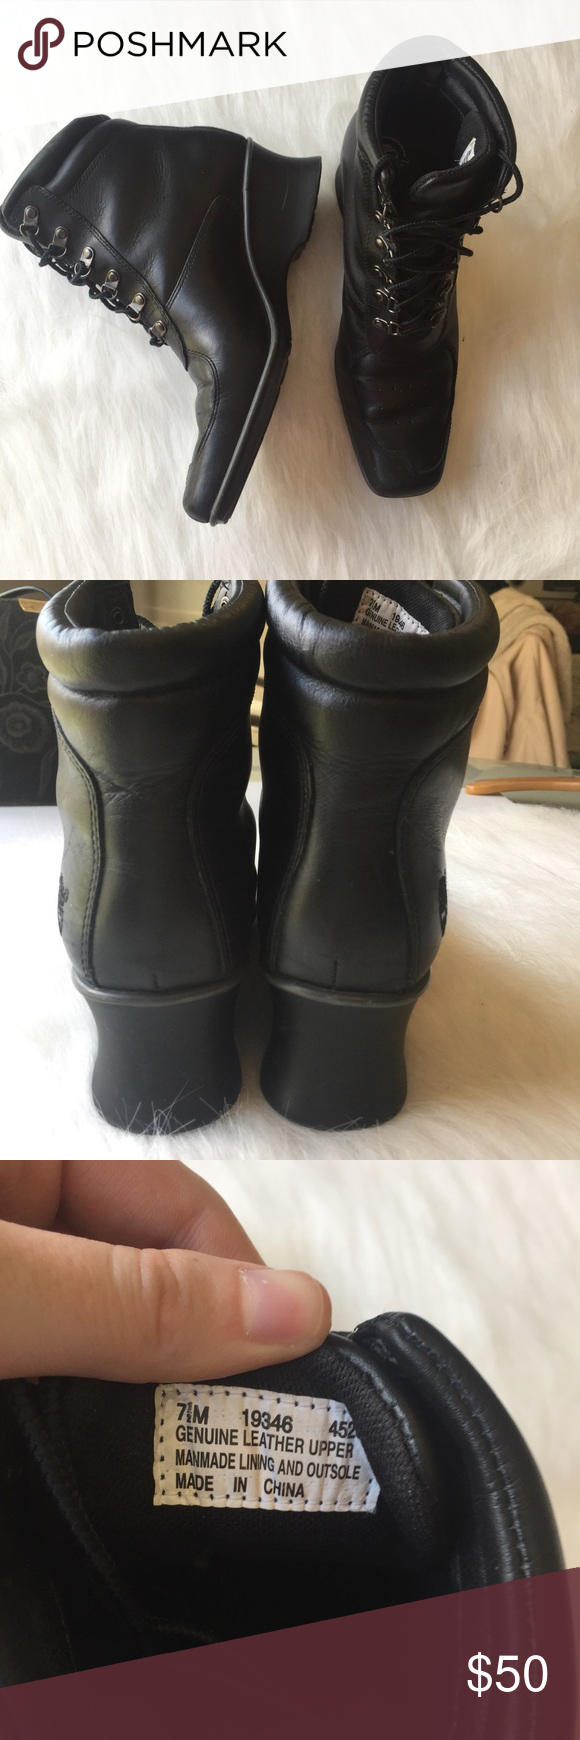 Timberland Heeled Boots Excellent used condition with little signs of wear! A very unique style of Timberlands. Perfect for weather where you need the boots, but don't want to give up style. Leather upper and rubber sole. See pictures for a better idea of condition. Bundle and save! Timberland Shoes Heeled Boots